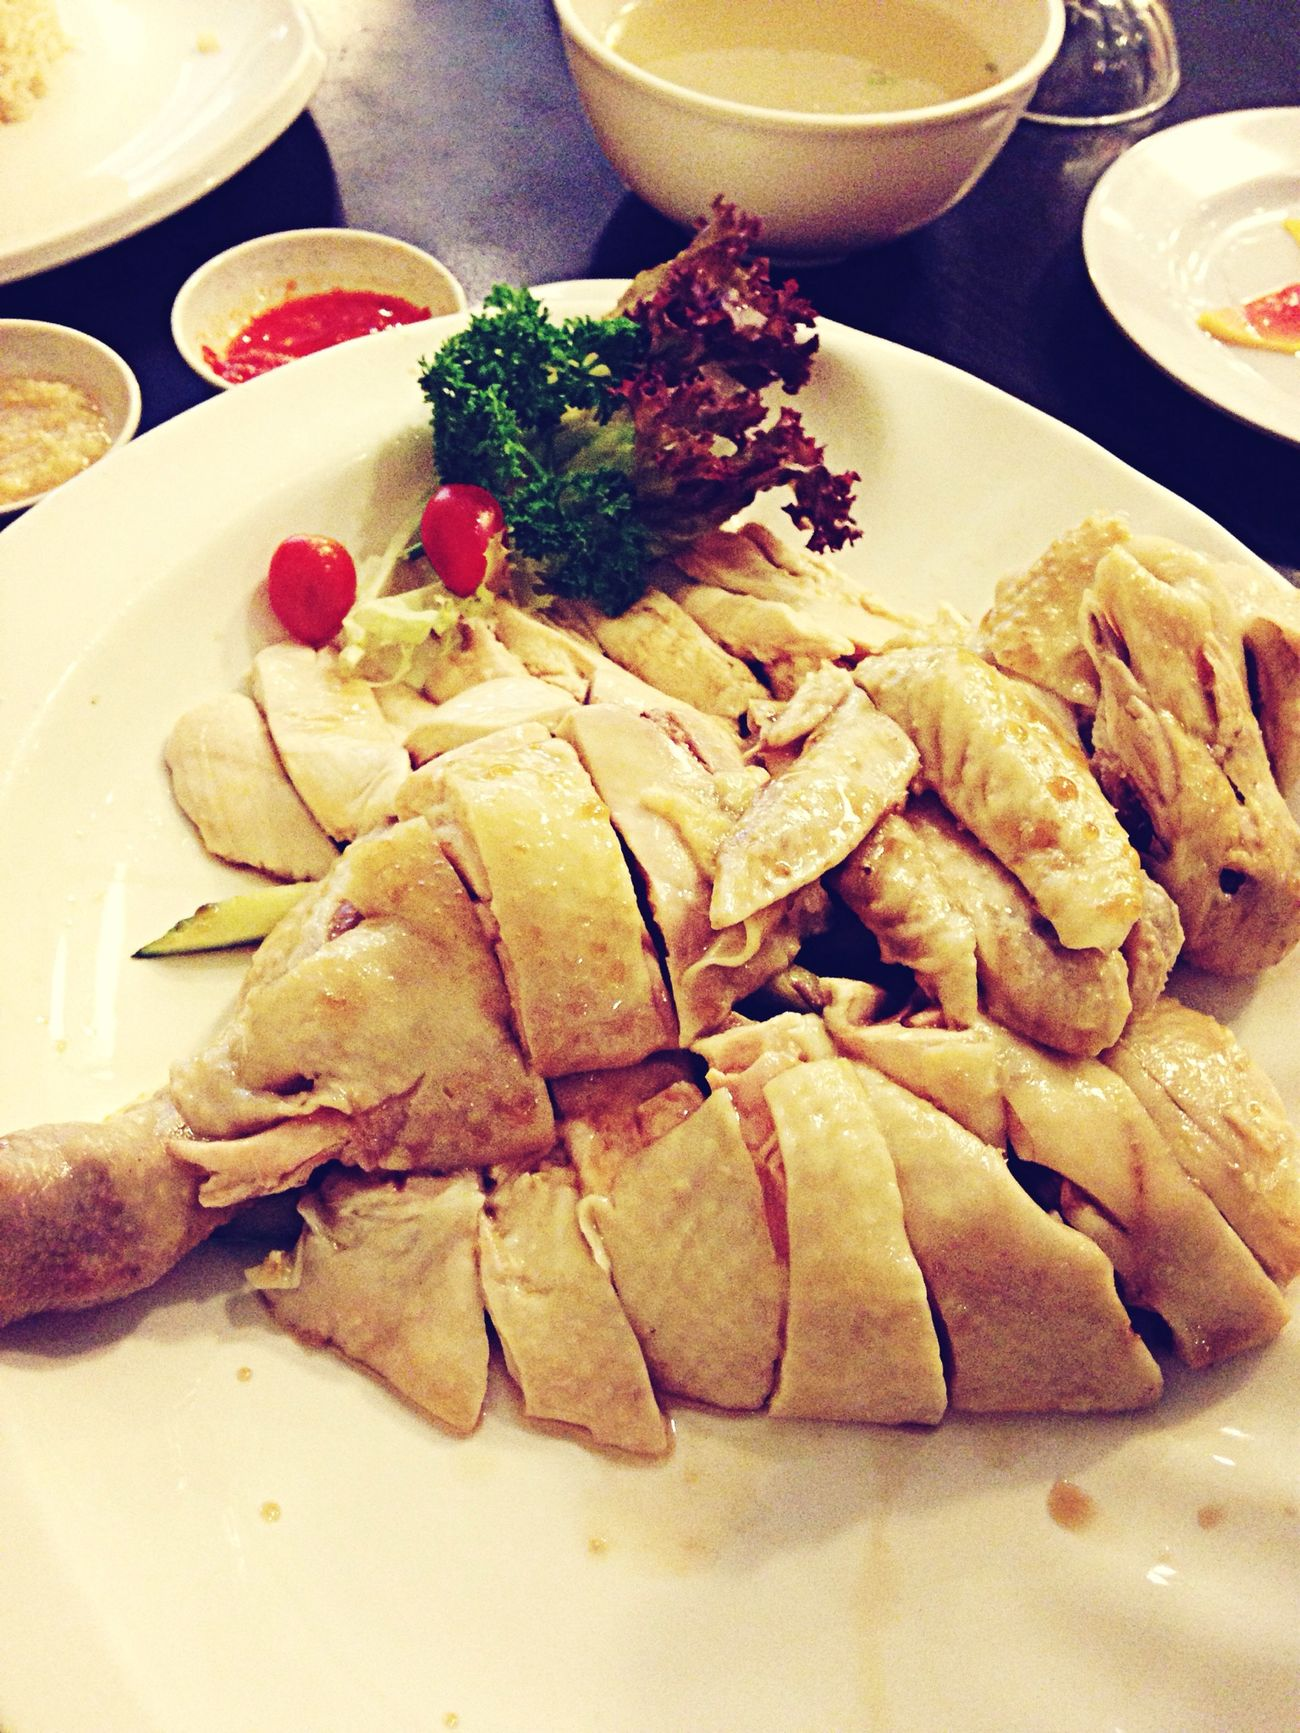 My welcome meal!!! Steamedchicken  Singaporefood